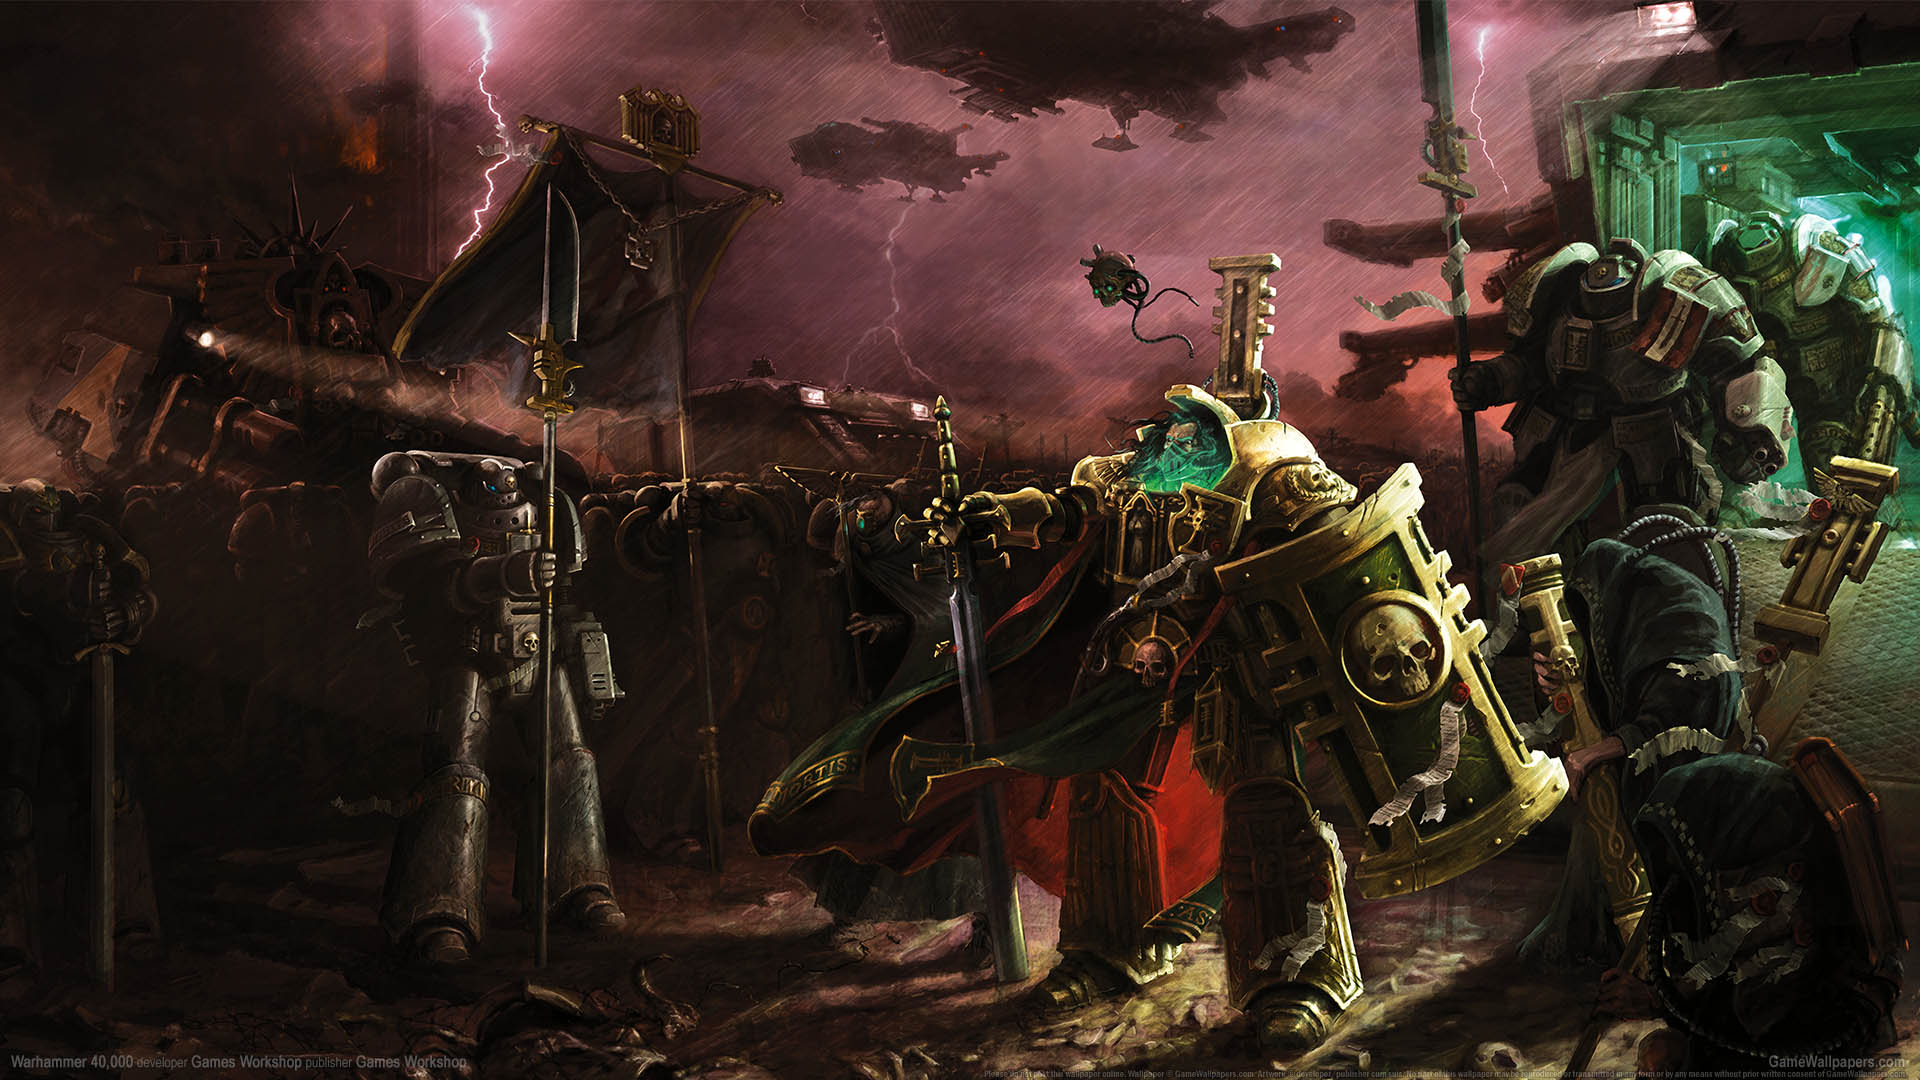 Warhammer 40,000 wallpaper 05 1920x1080